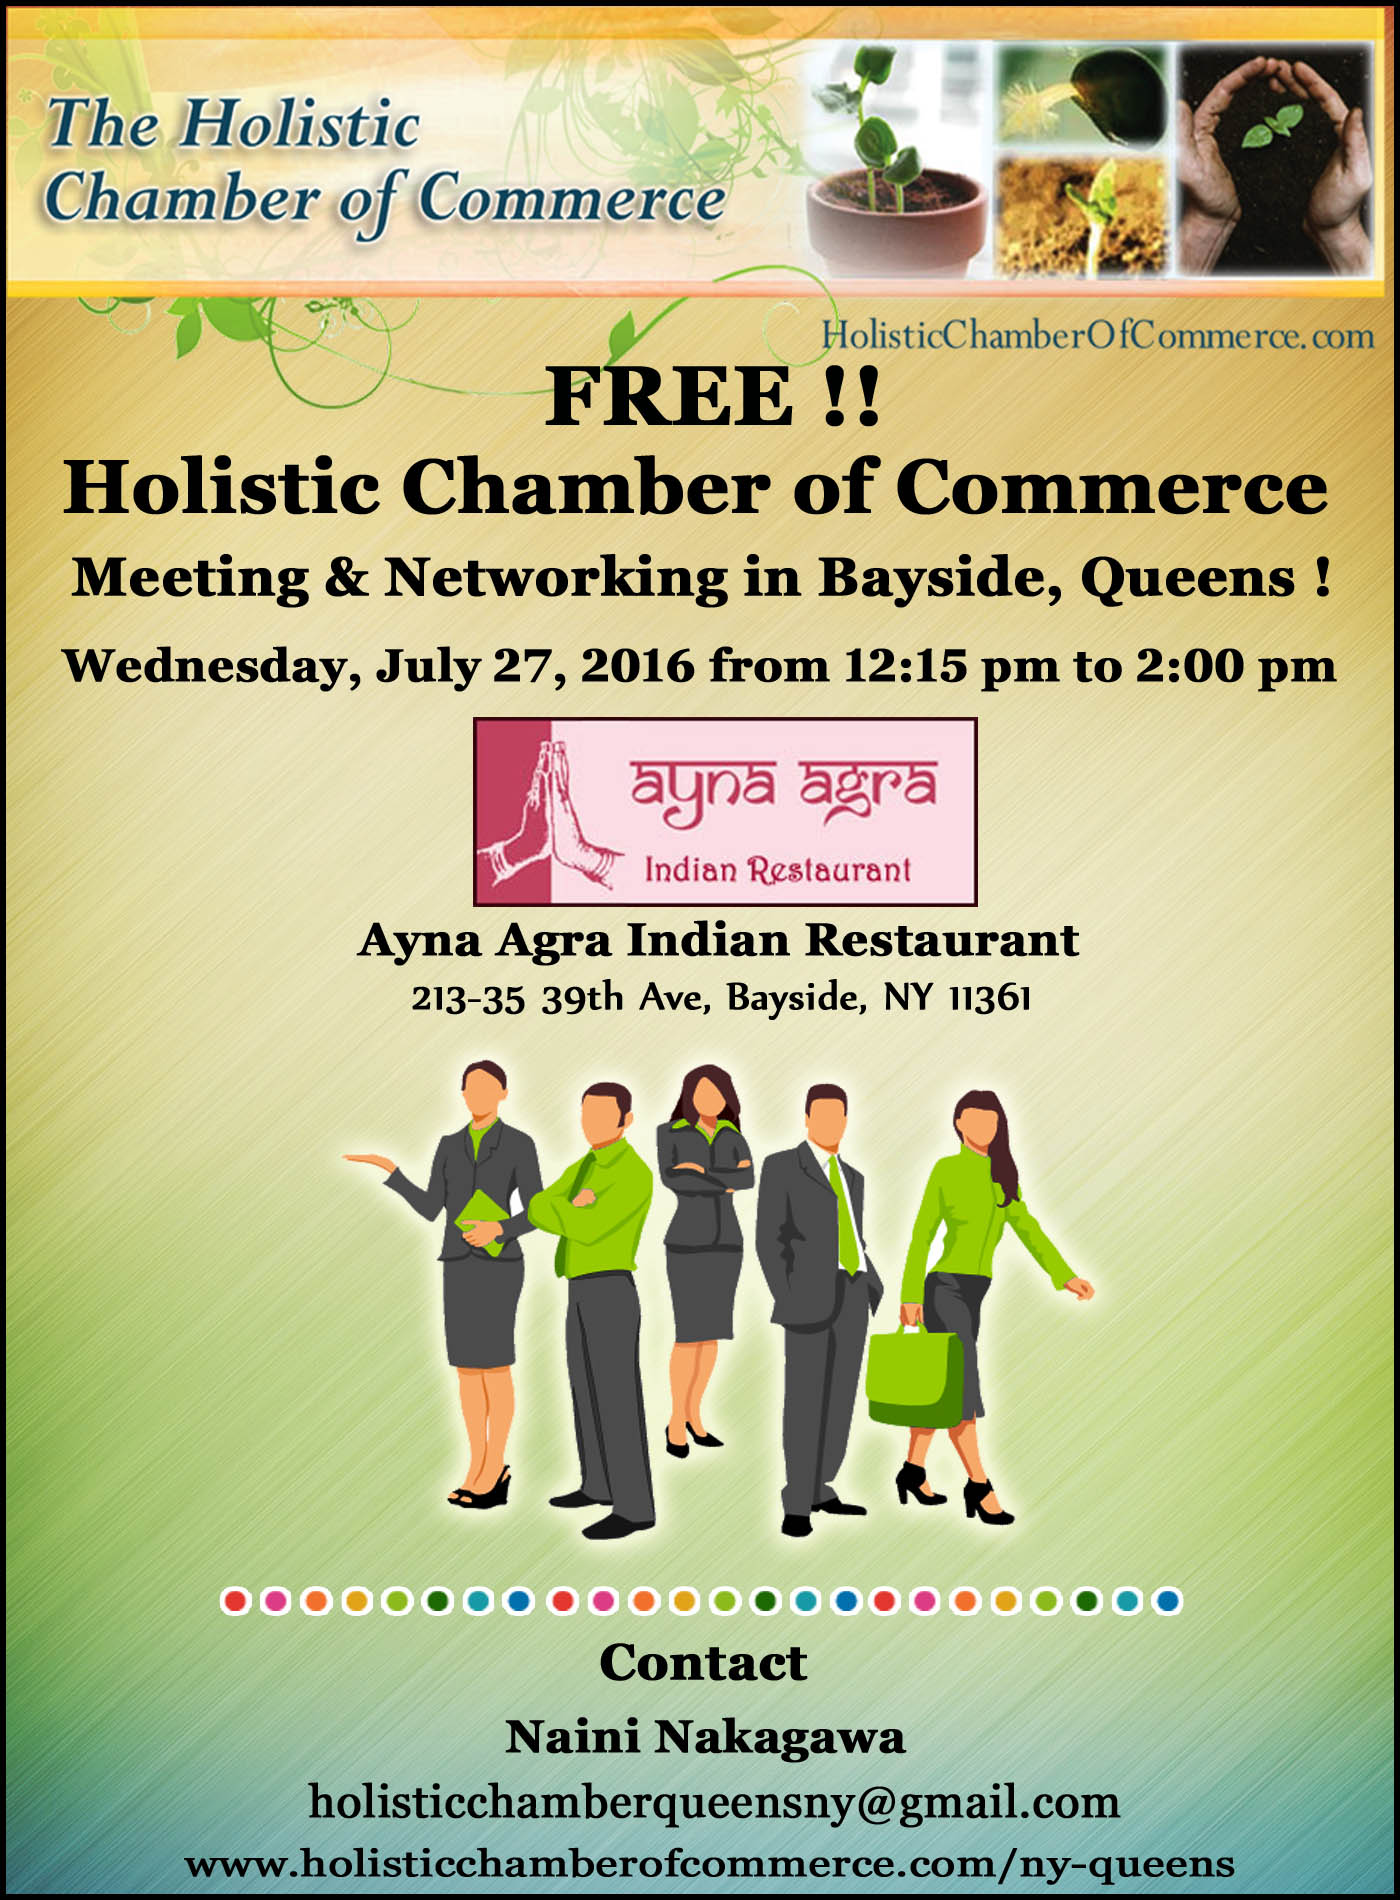 FREE!! Holistic Chamber of Commerce Meeting & Networking in Bayside!